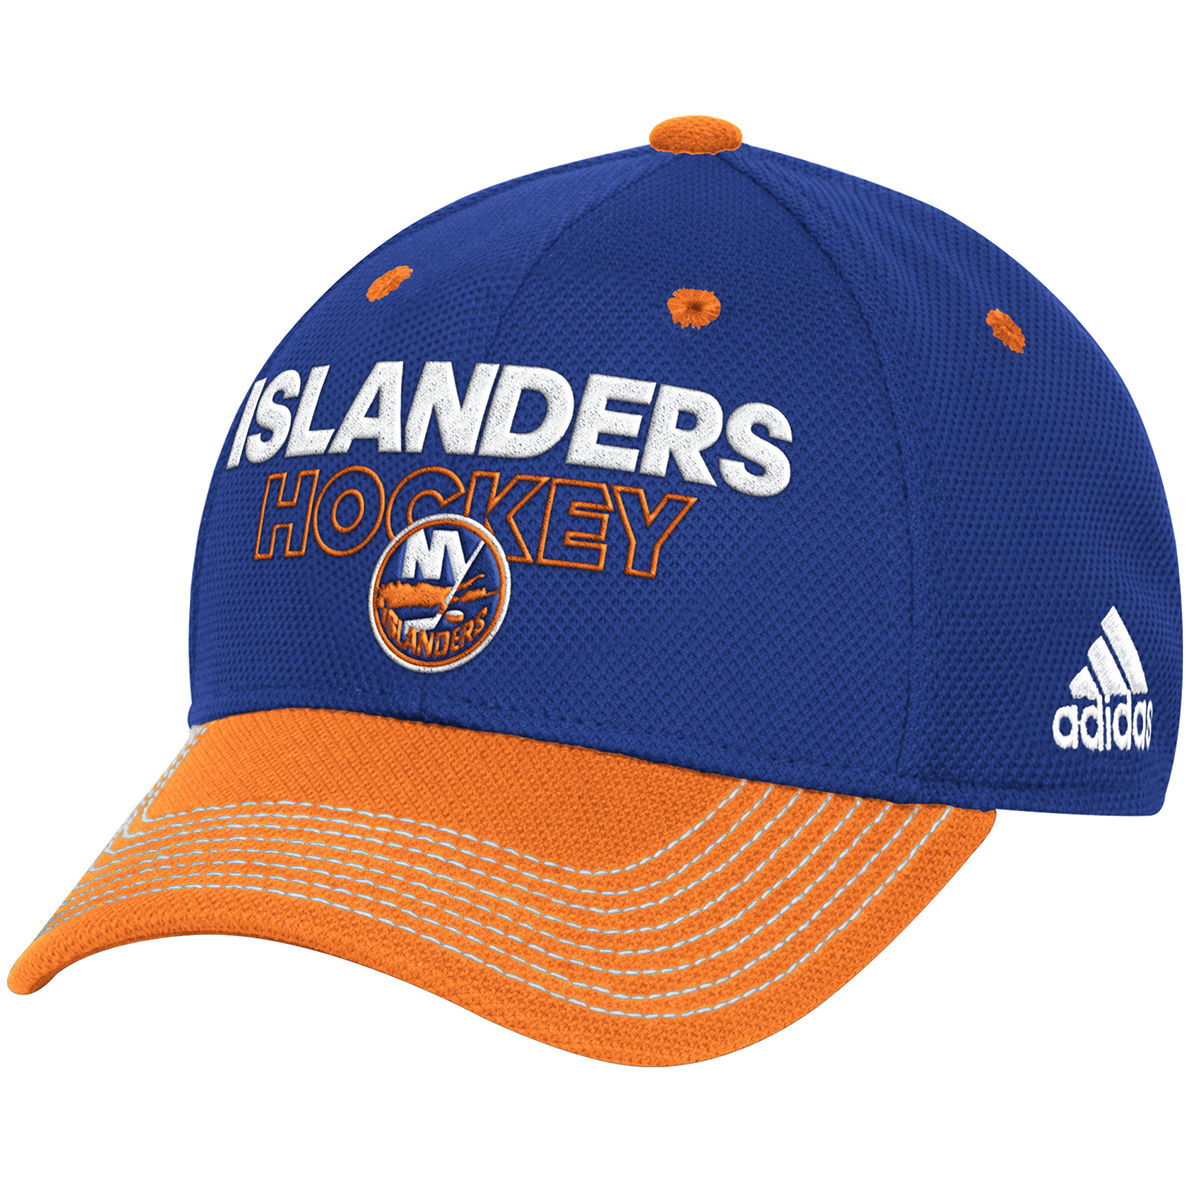 New York Islanders Adult 2017 Locker Room Structured Flex Hat